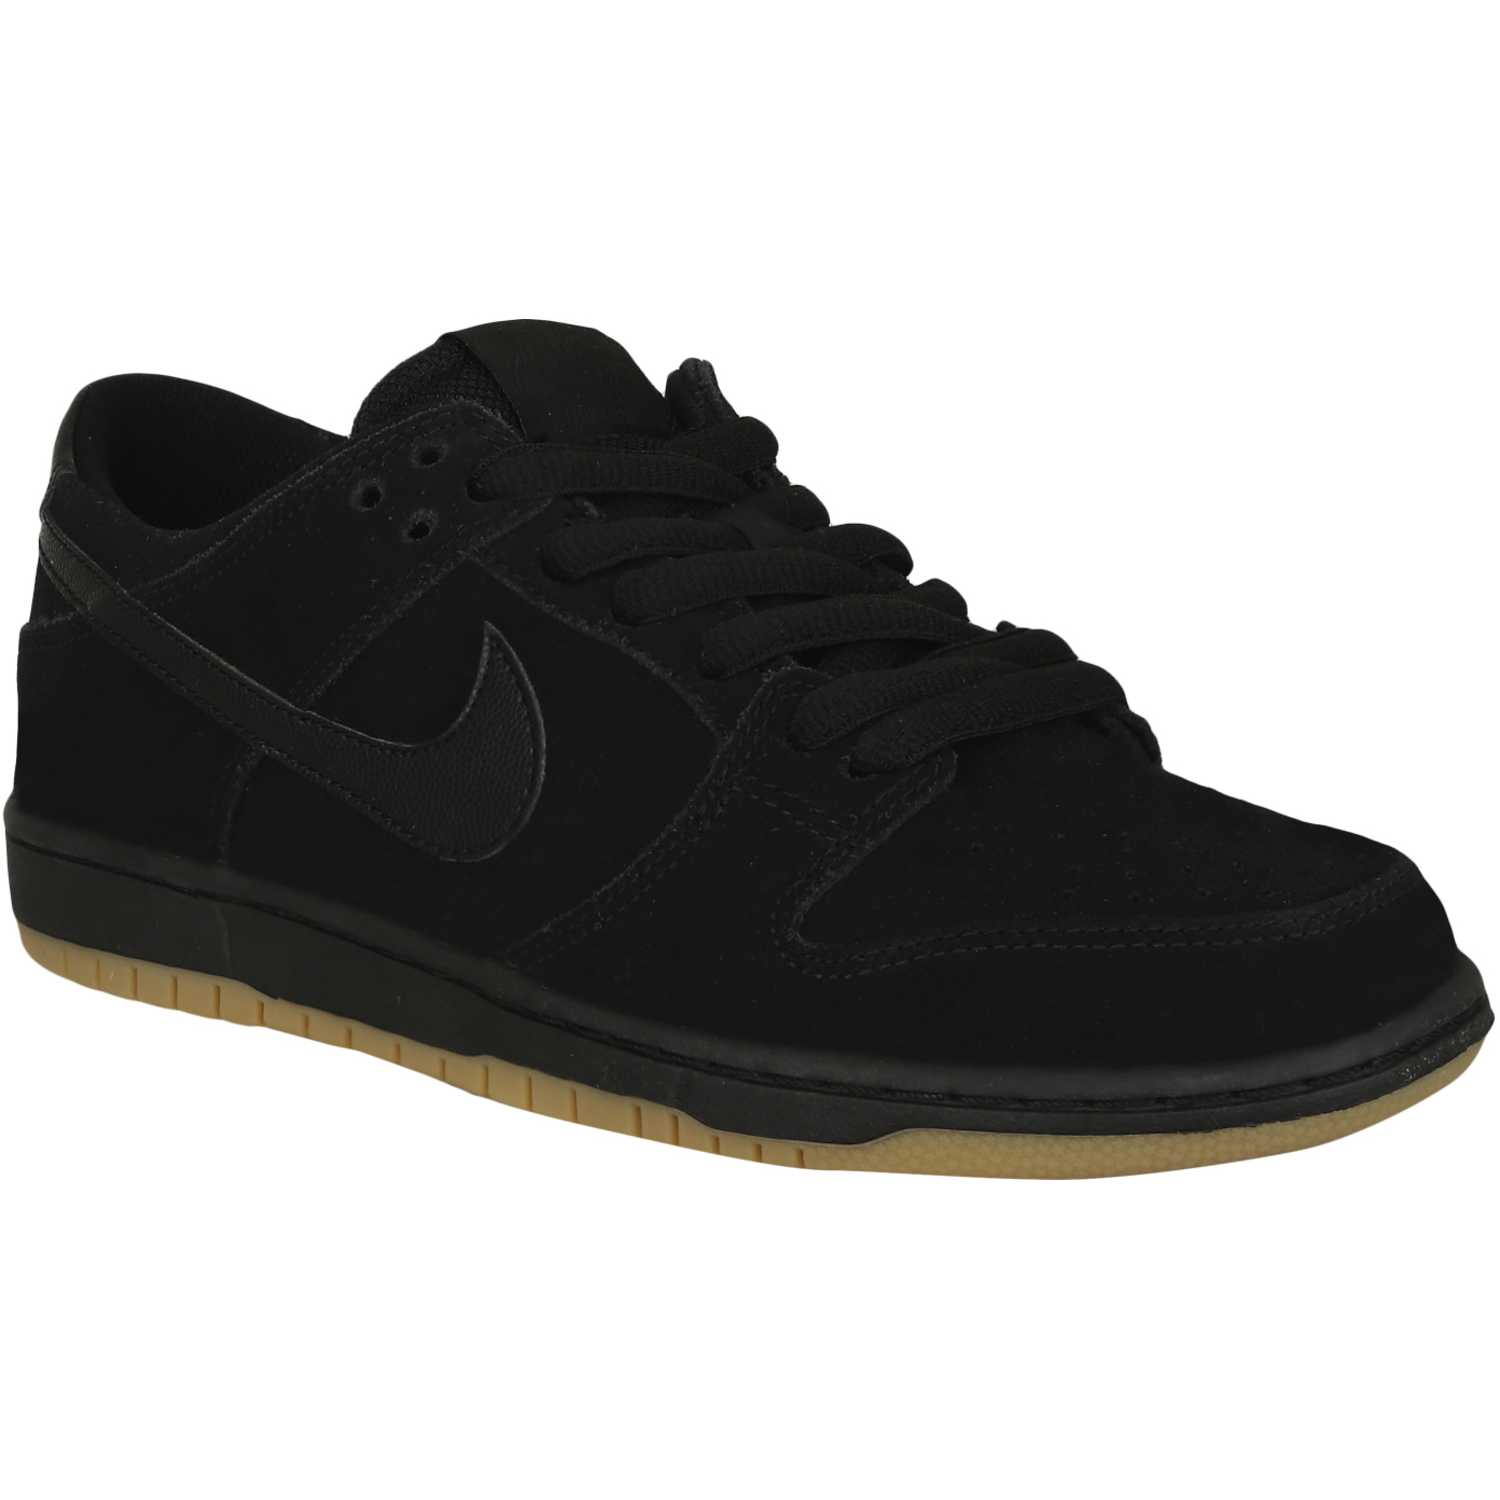 low priced 16999 c1f22 Zapatilla de Hombre Nike Negro dunk low pro iw